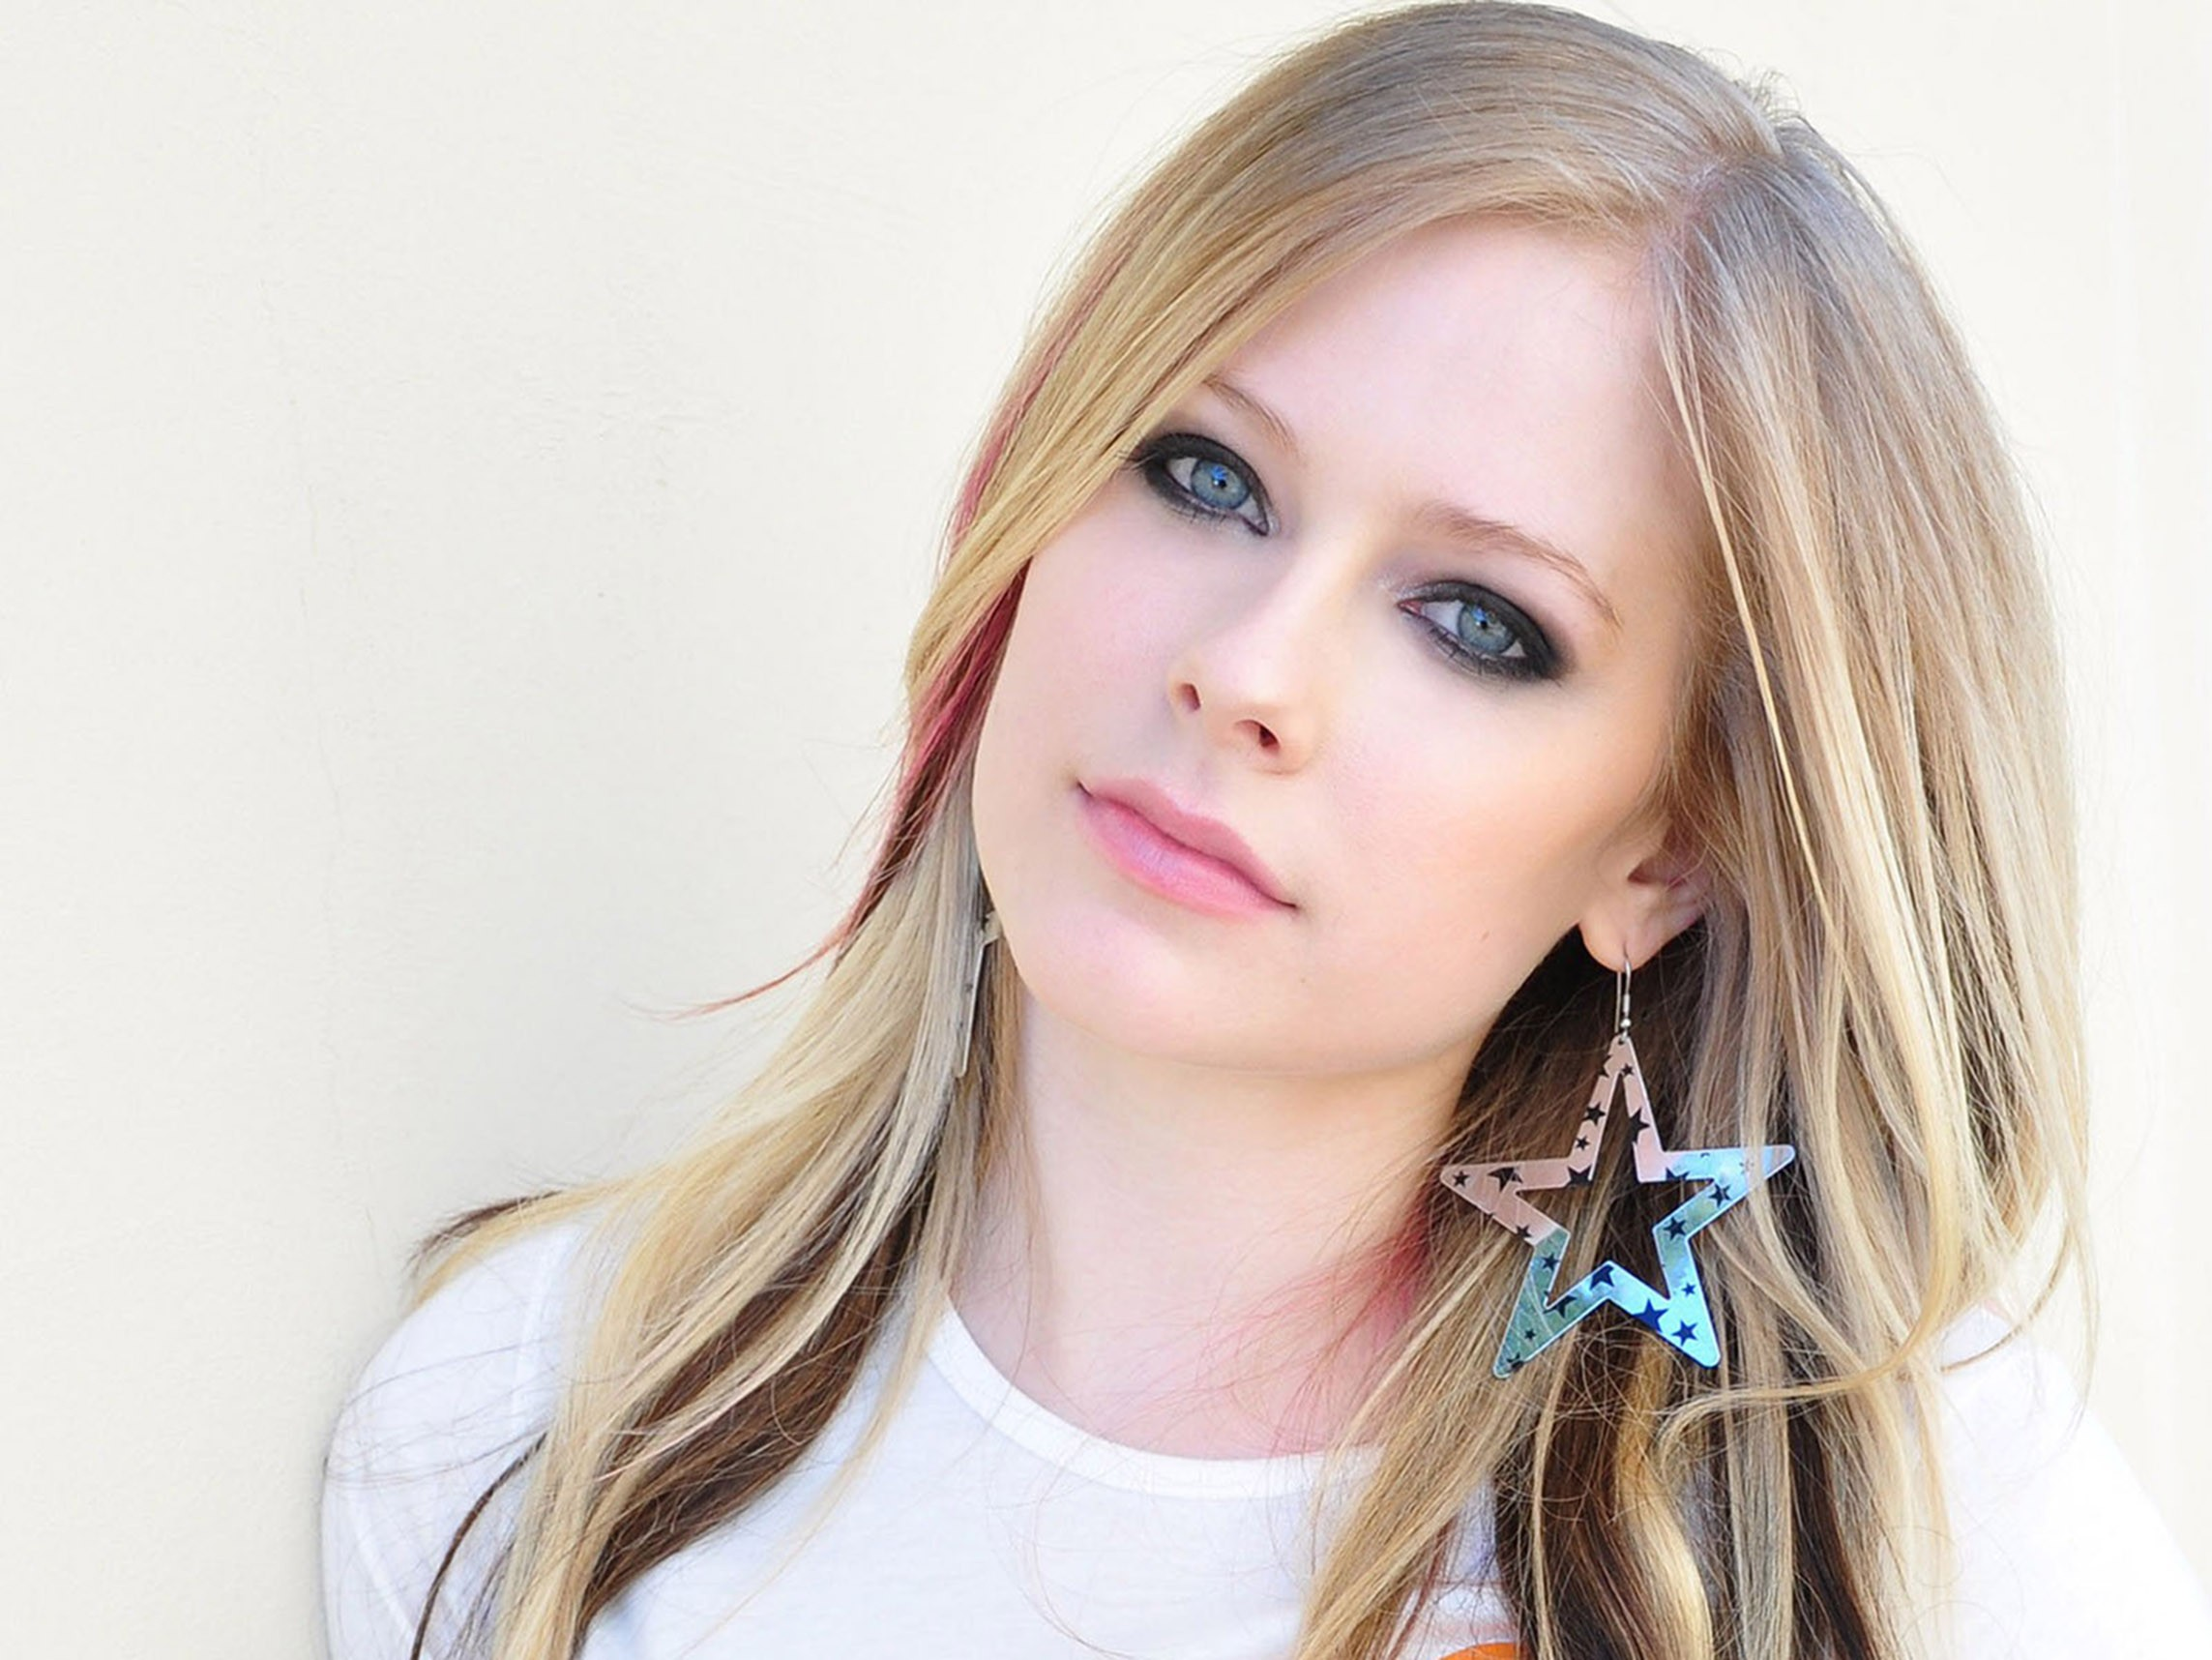 : http://www.fanpop.com/clubs/avril-lavigne/images/38584728/title/3-avril-lavigne-3-photo